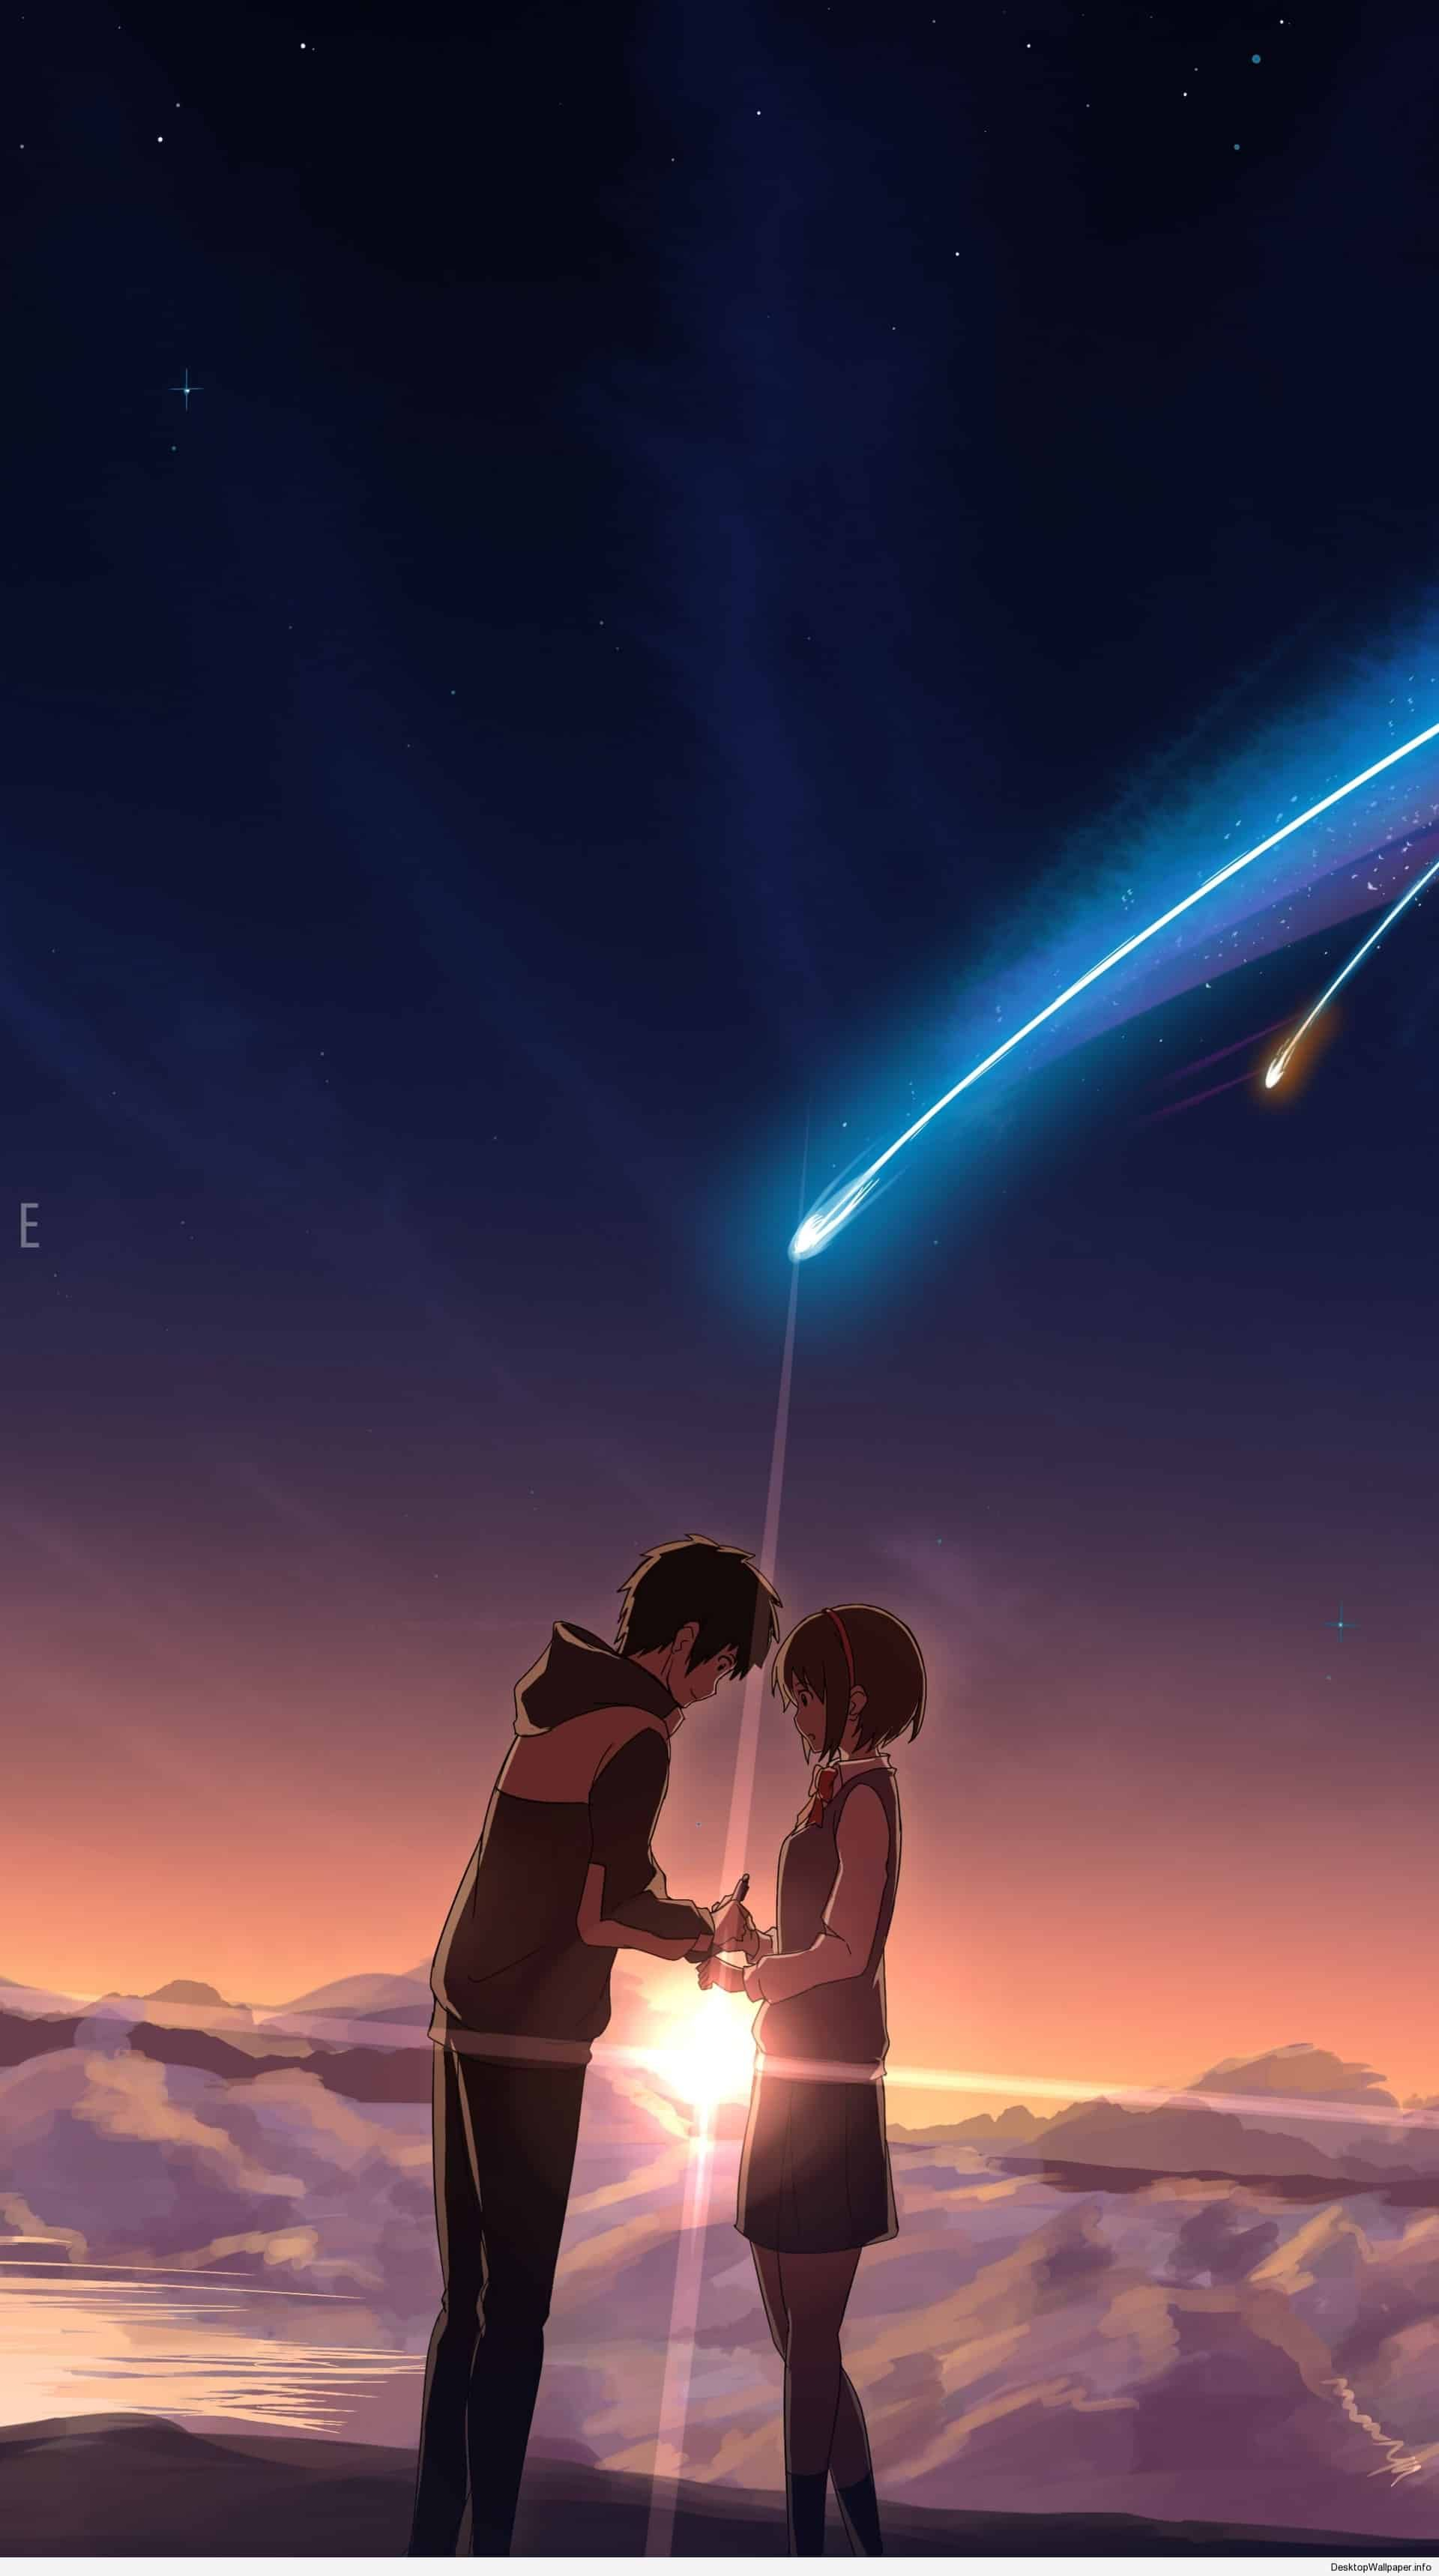 kimi no nawa wallpaper iphone Filmes de anime, Animes